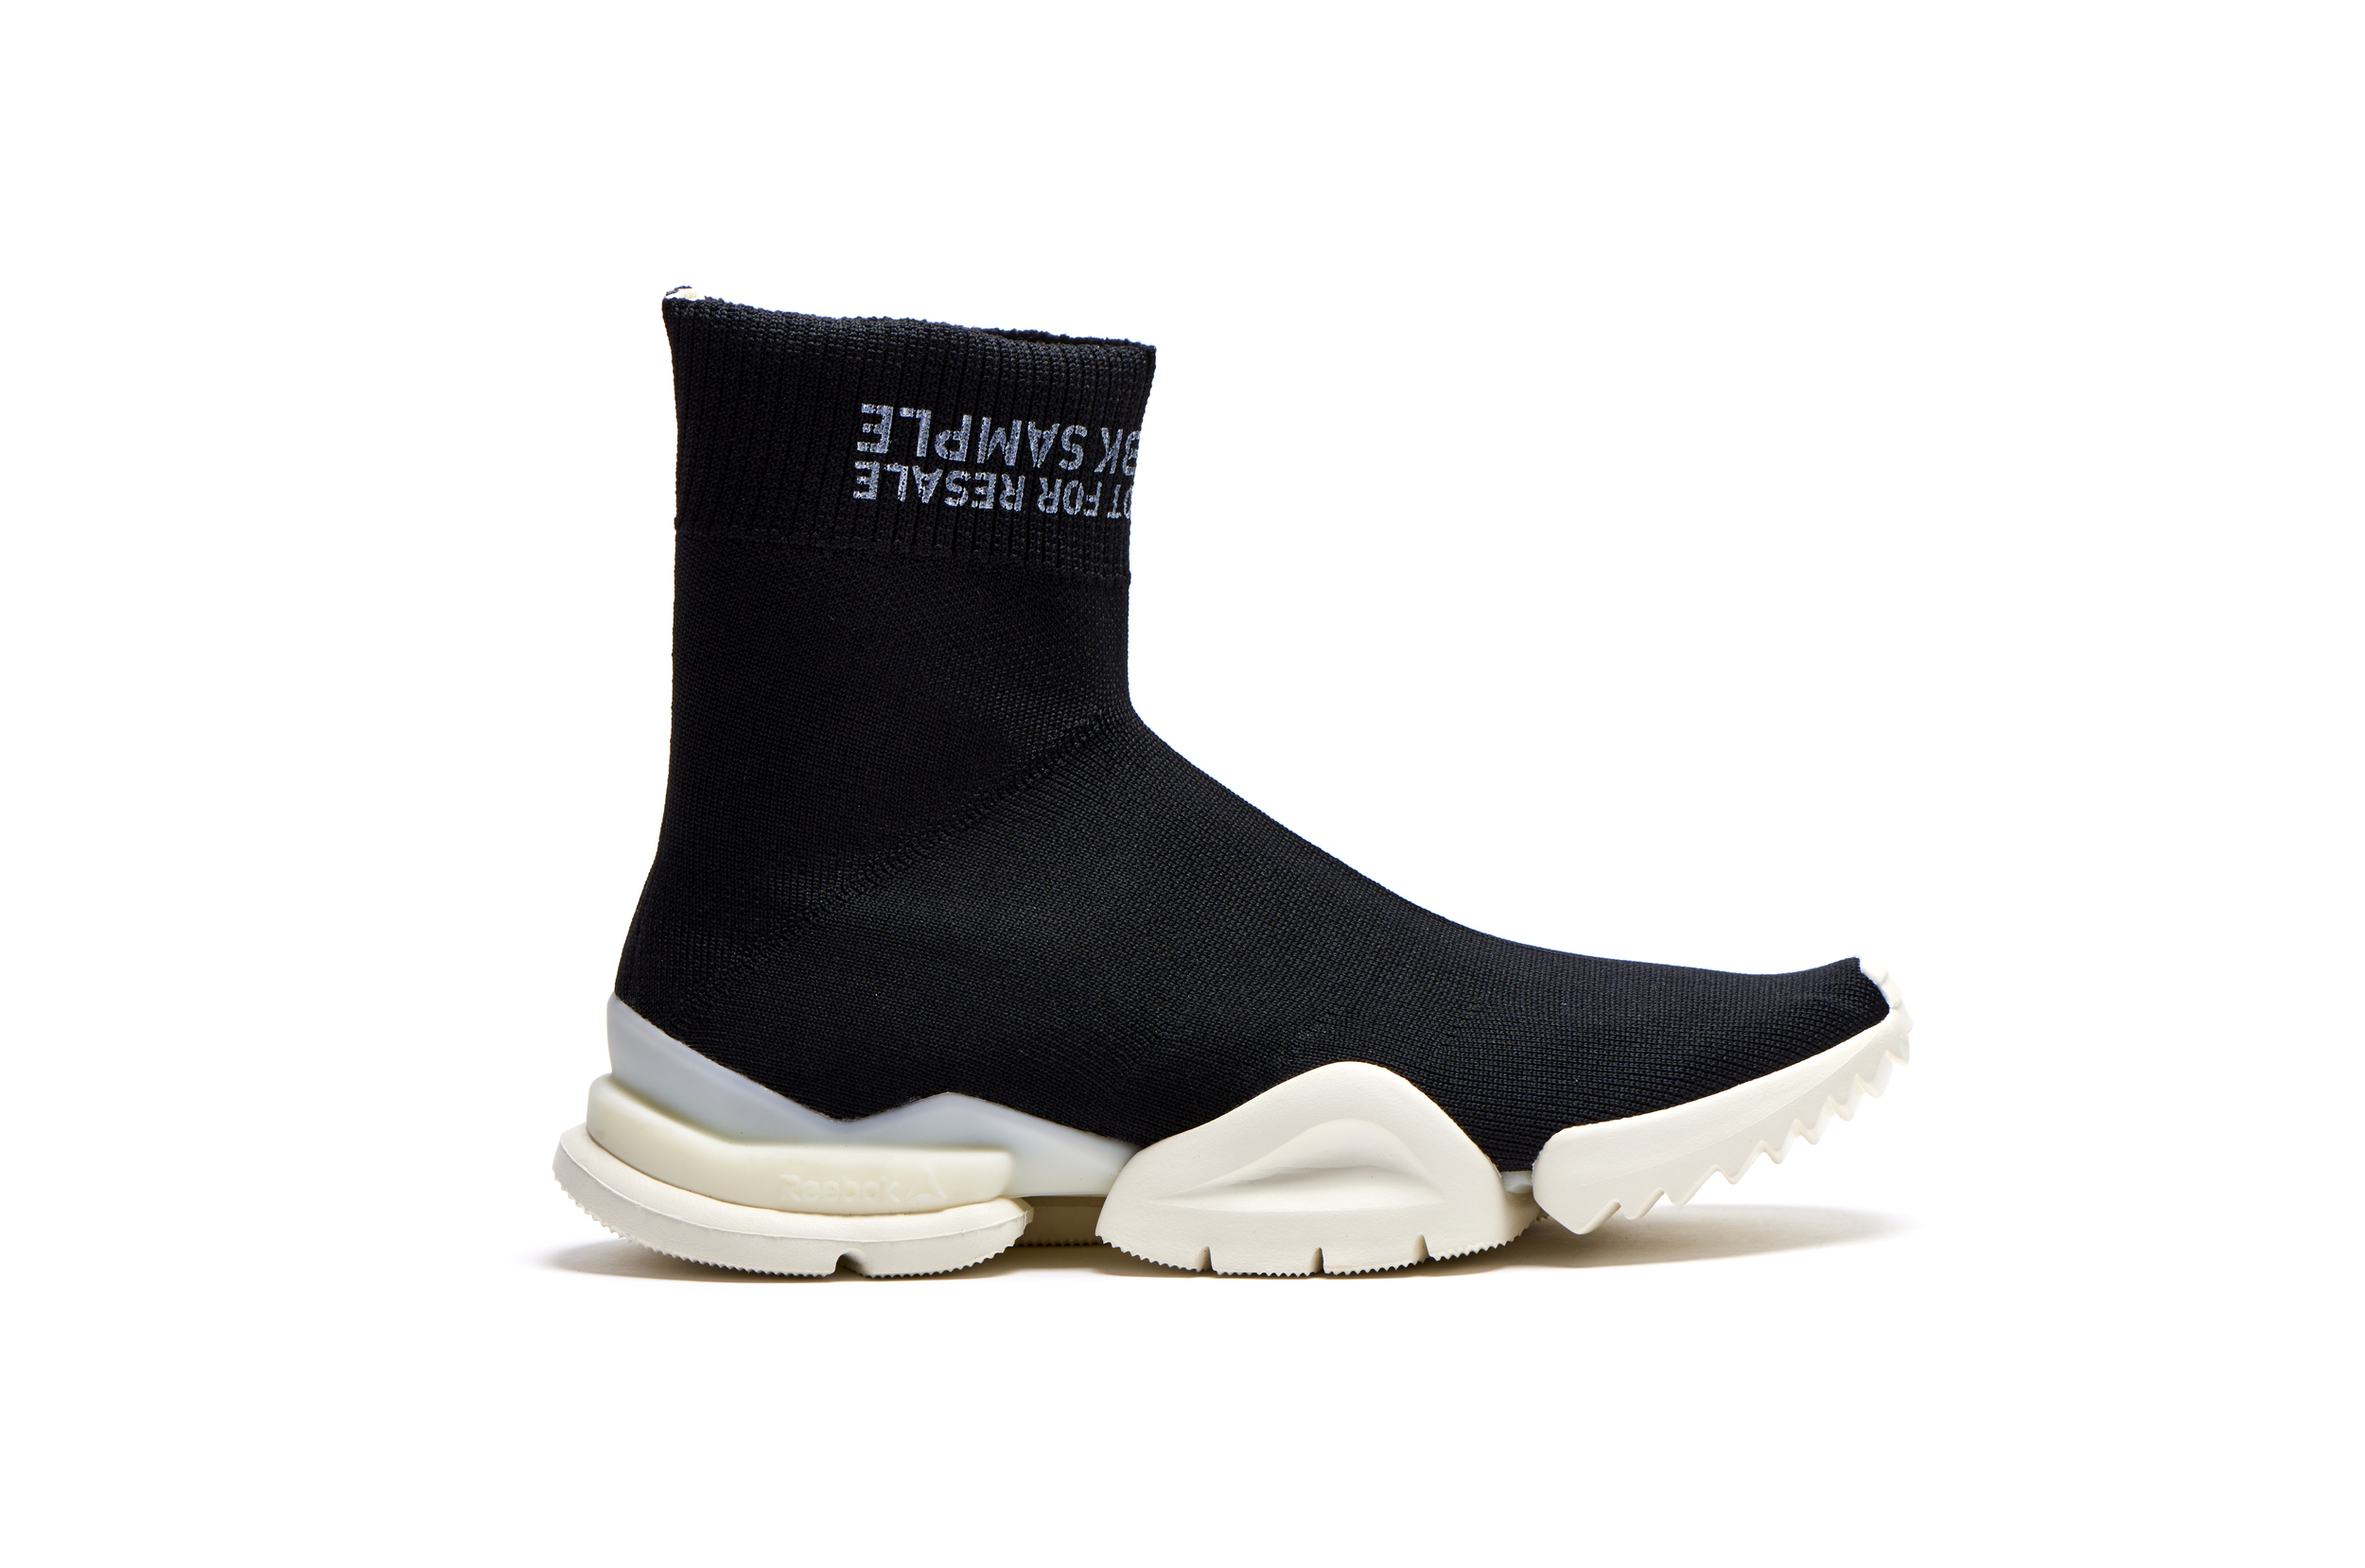 Dental Son Correctamente  The Reebok Sock Run.r Will Drop Exclusively at Barneys This Friday -  WearTesters